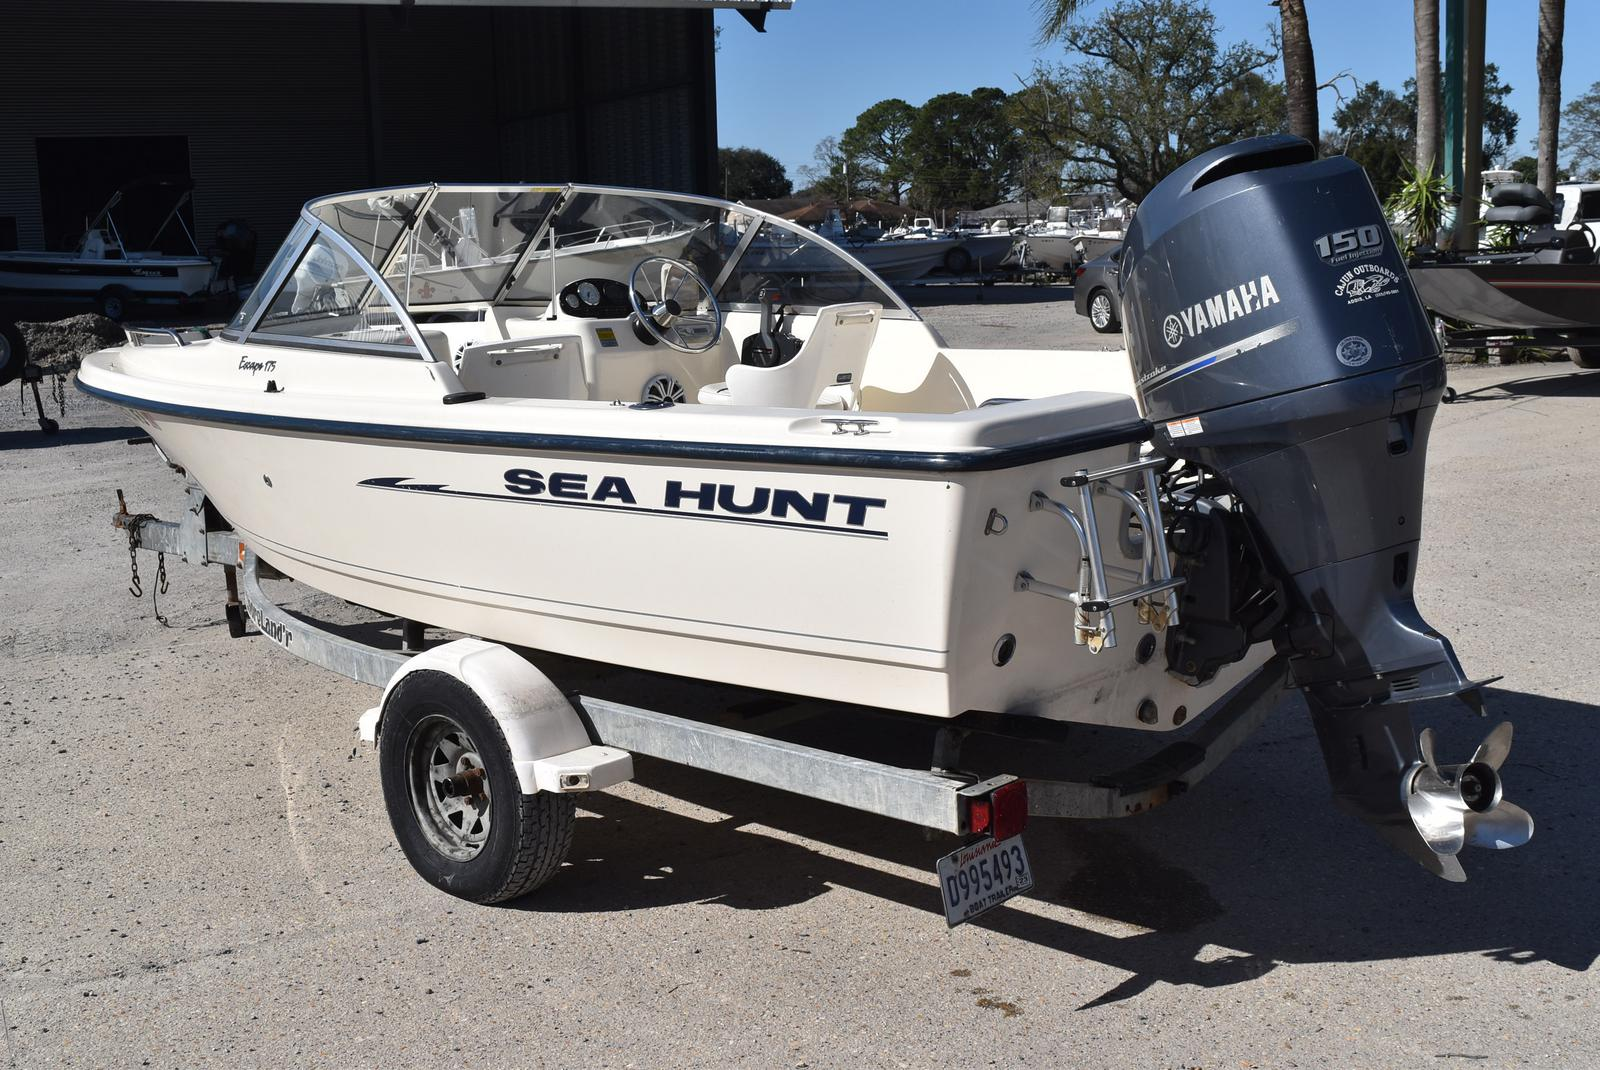 2003 Sea Hunt boat for sale, model of the boat is Escape 175 & Image # 13 of 16